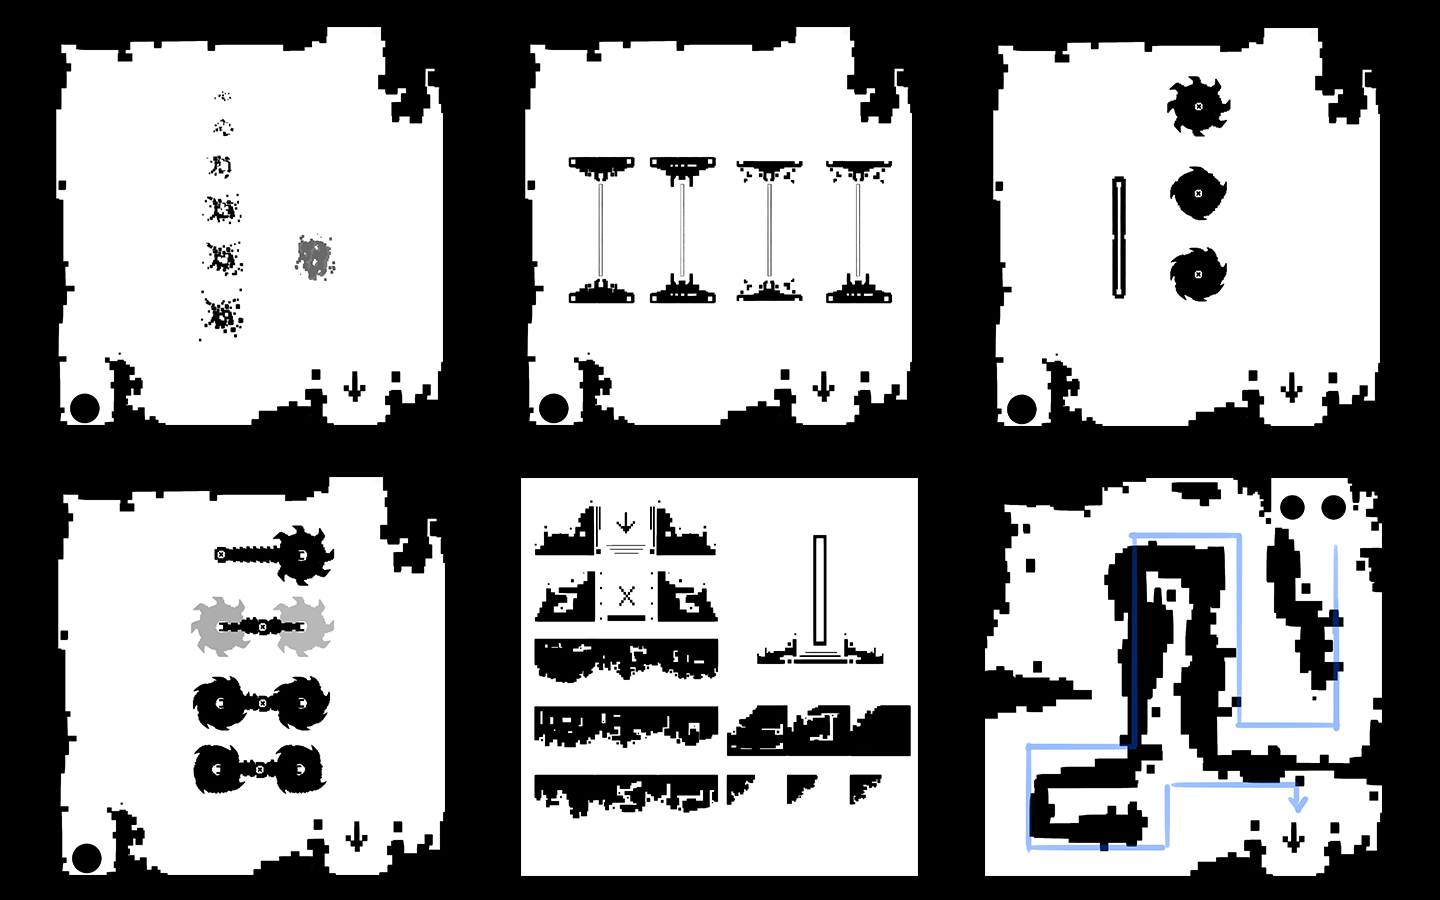 Early environment designs for Bichromia